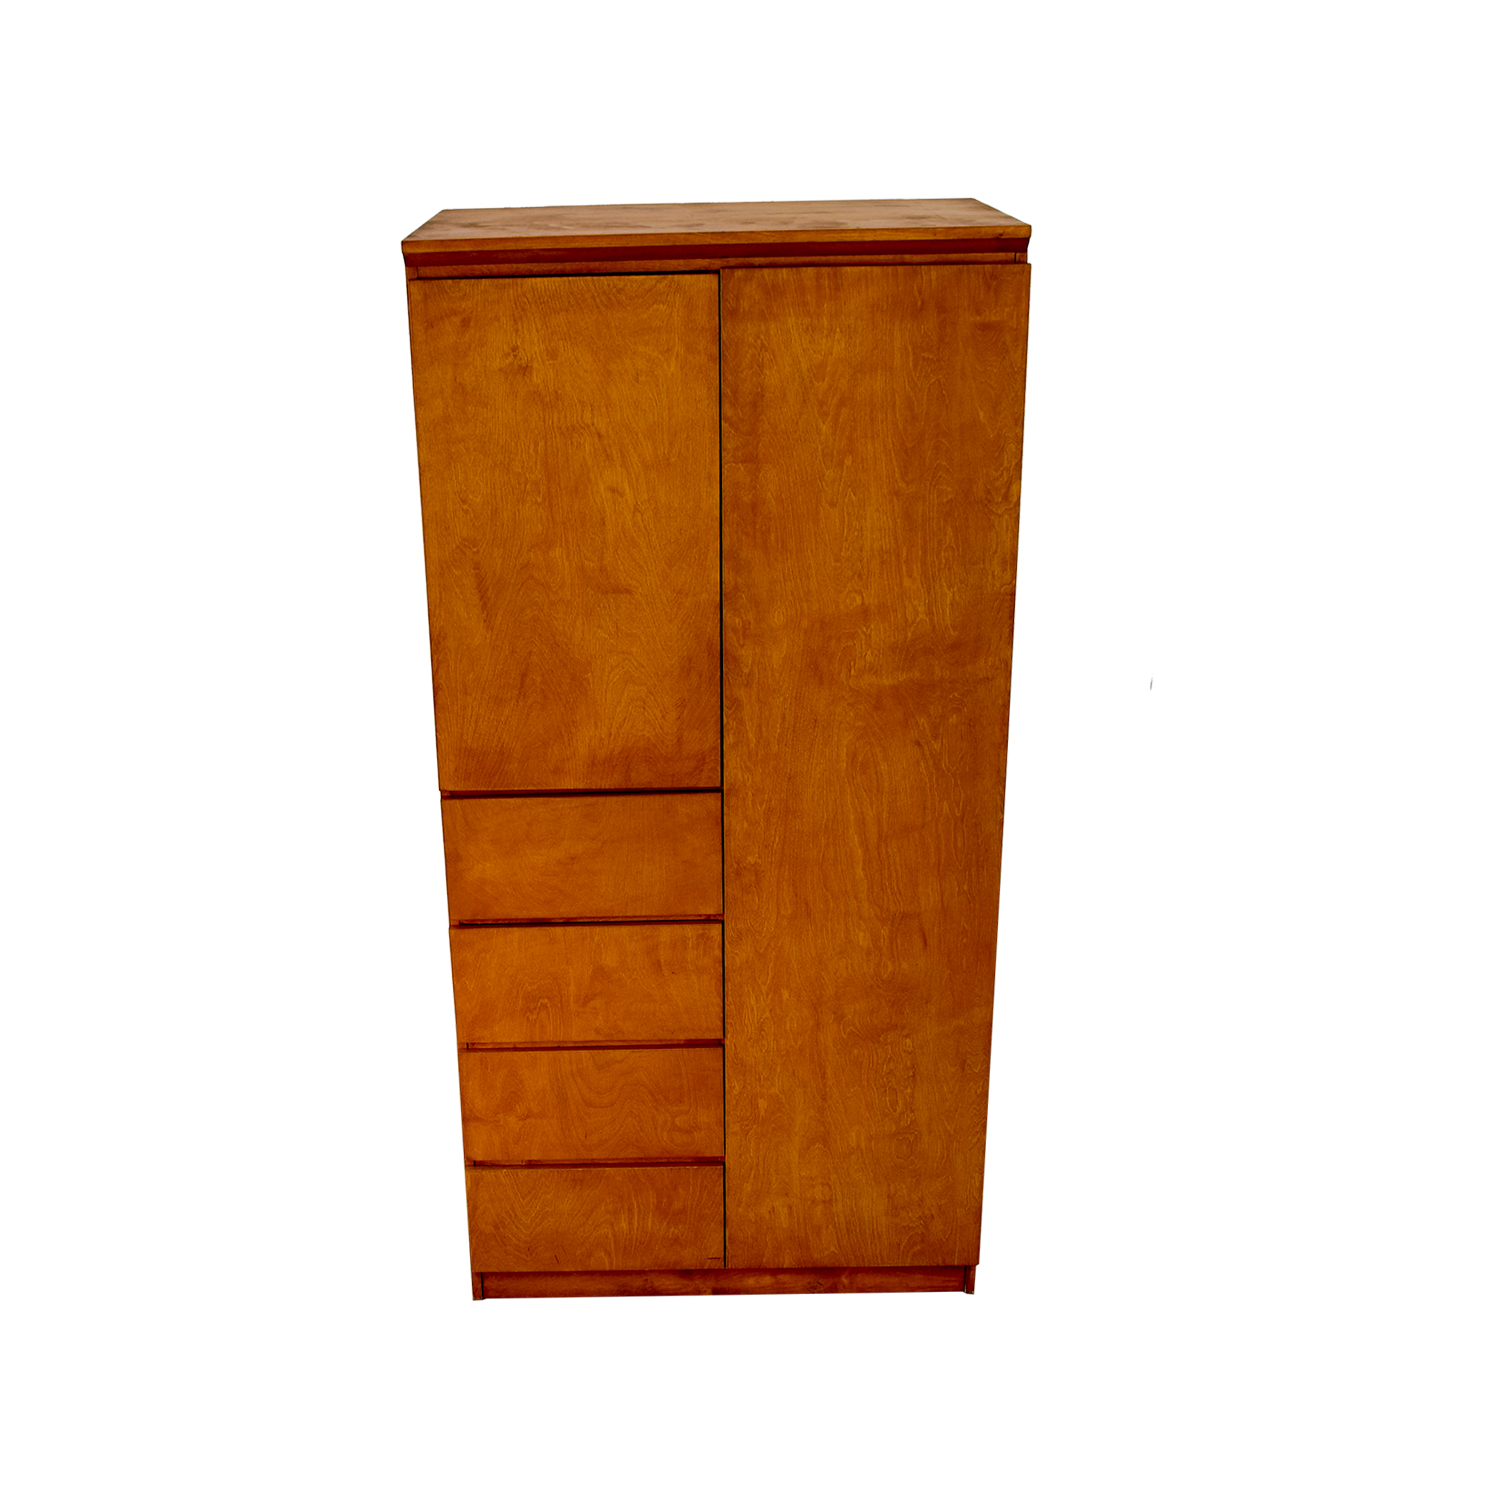 buy Gothic Cabinets Solid Wood Wardrobe Gothic Cabinets Storage